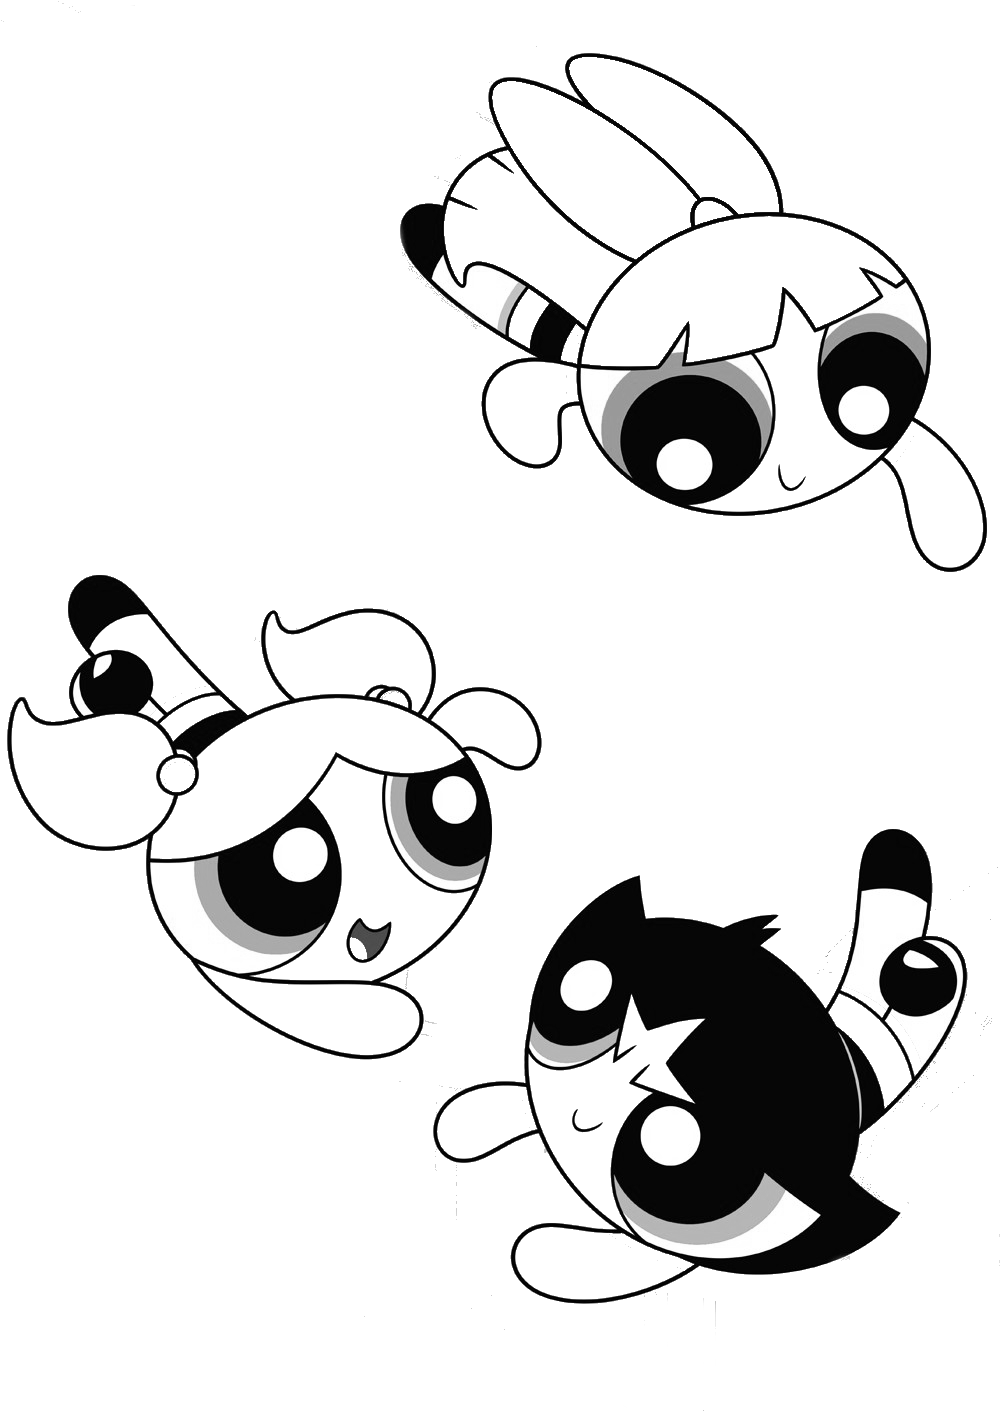 coloring powerpuff girls drawing powerpuff girls excited coloring pages superhero drawing coloring powerpuff girls